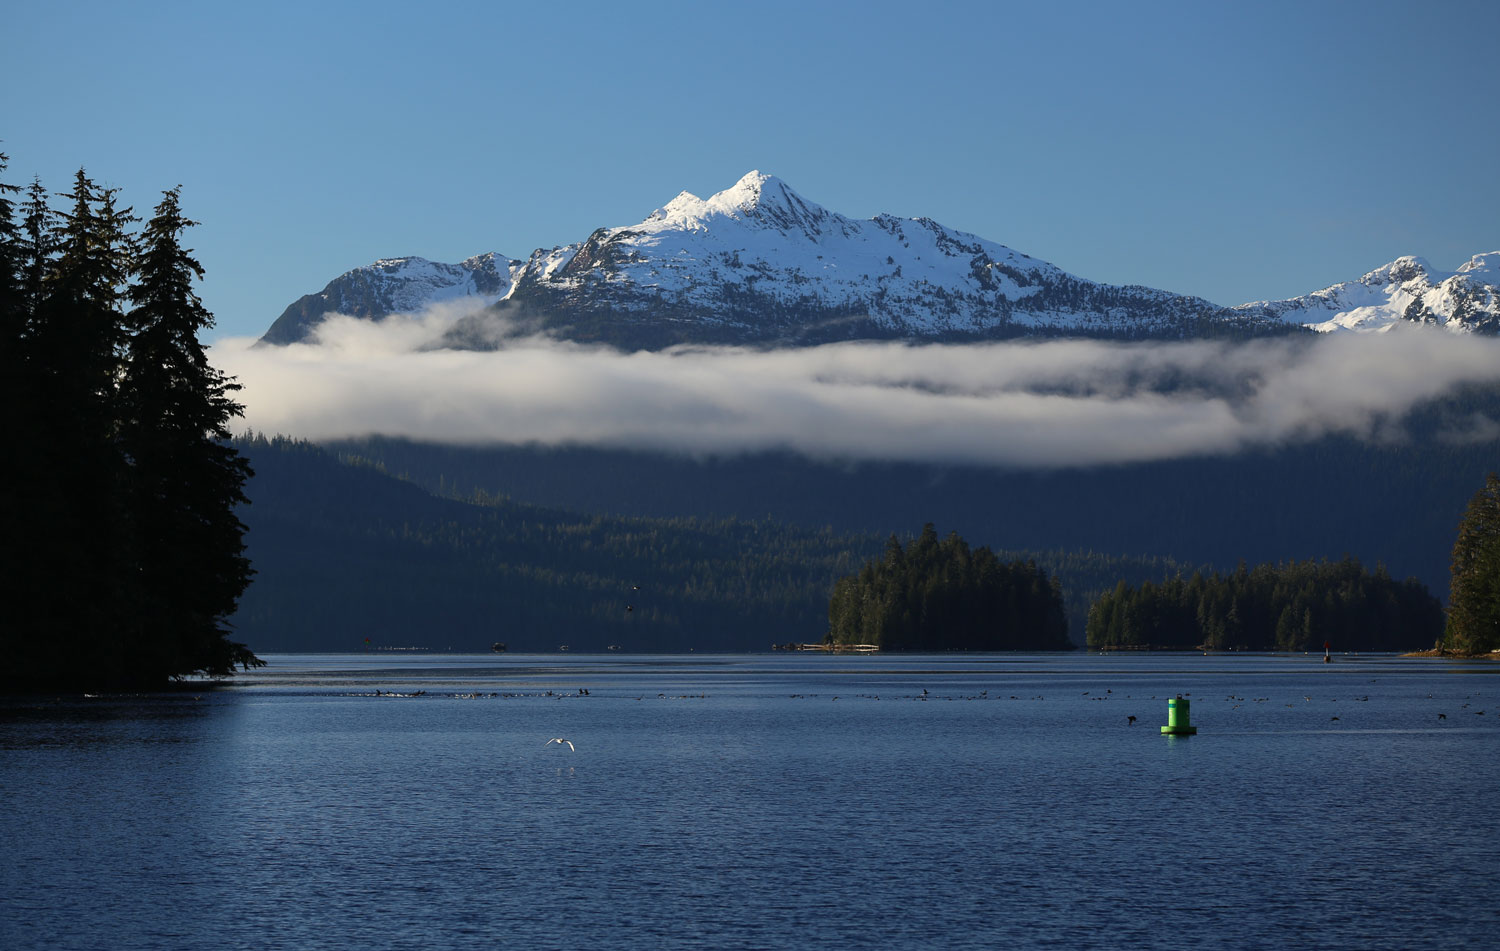 Southeast Alaska islands birds buoy mountains fog